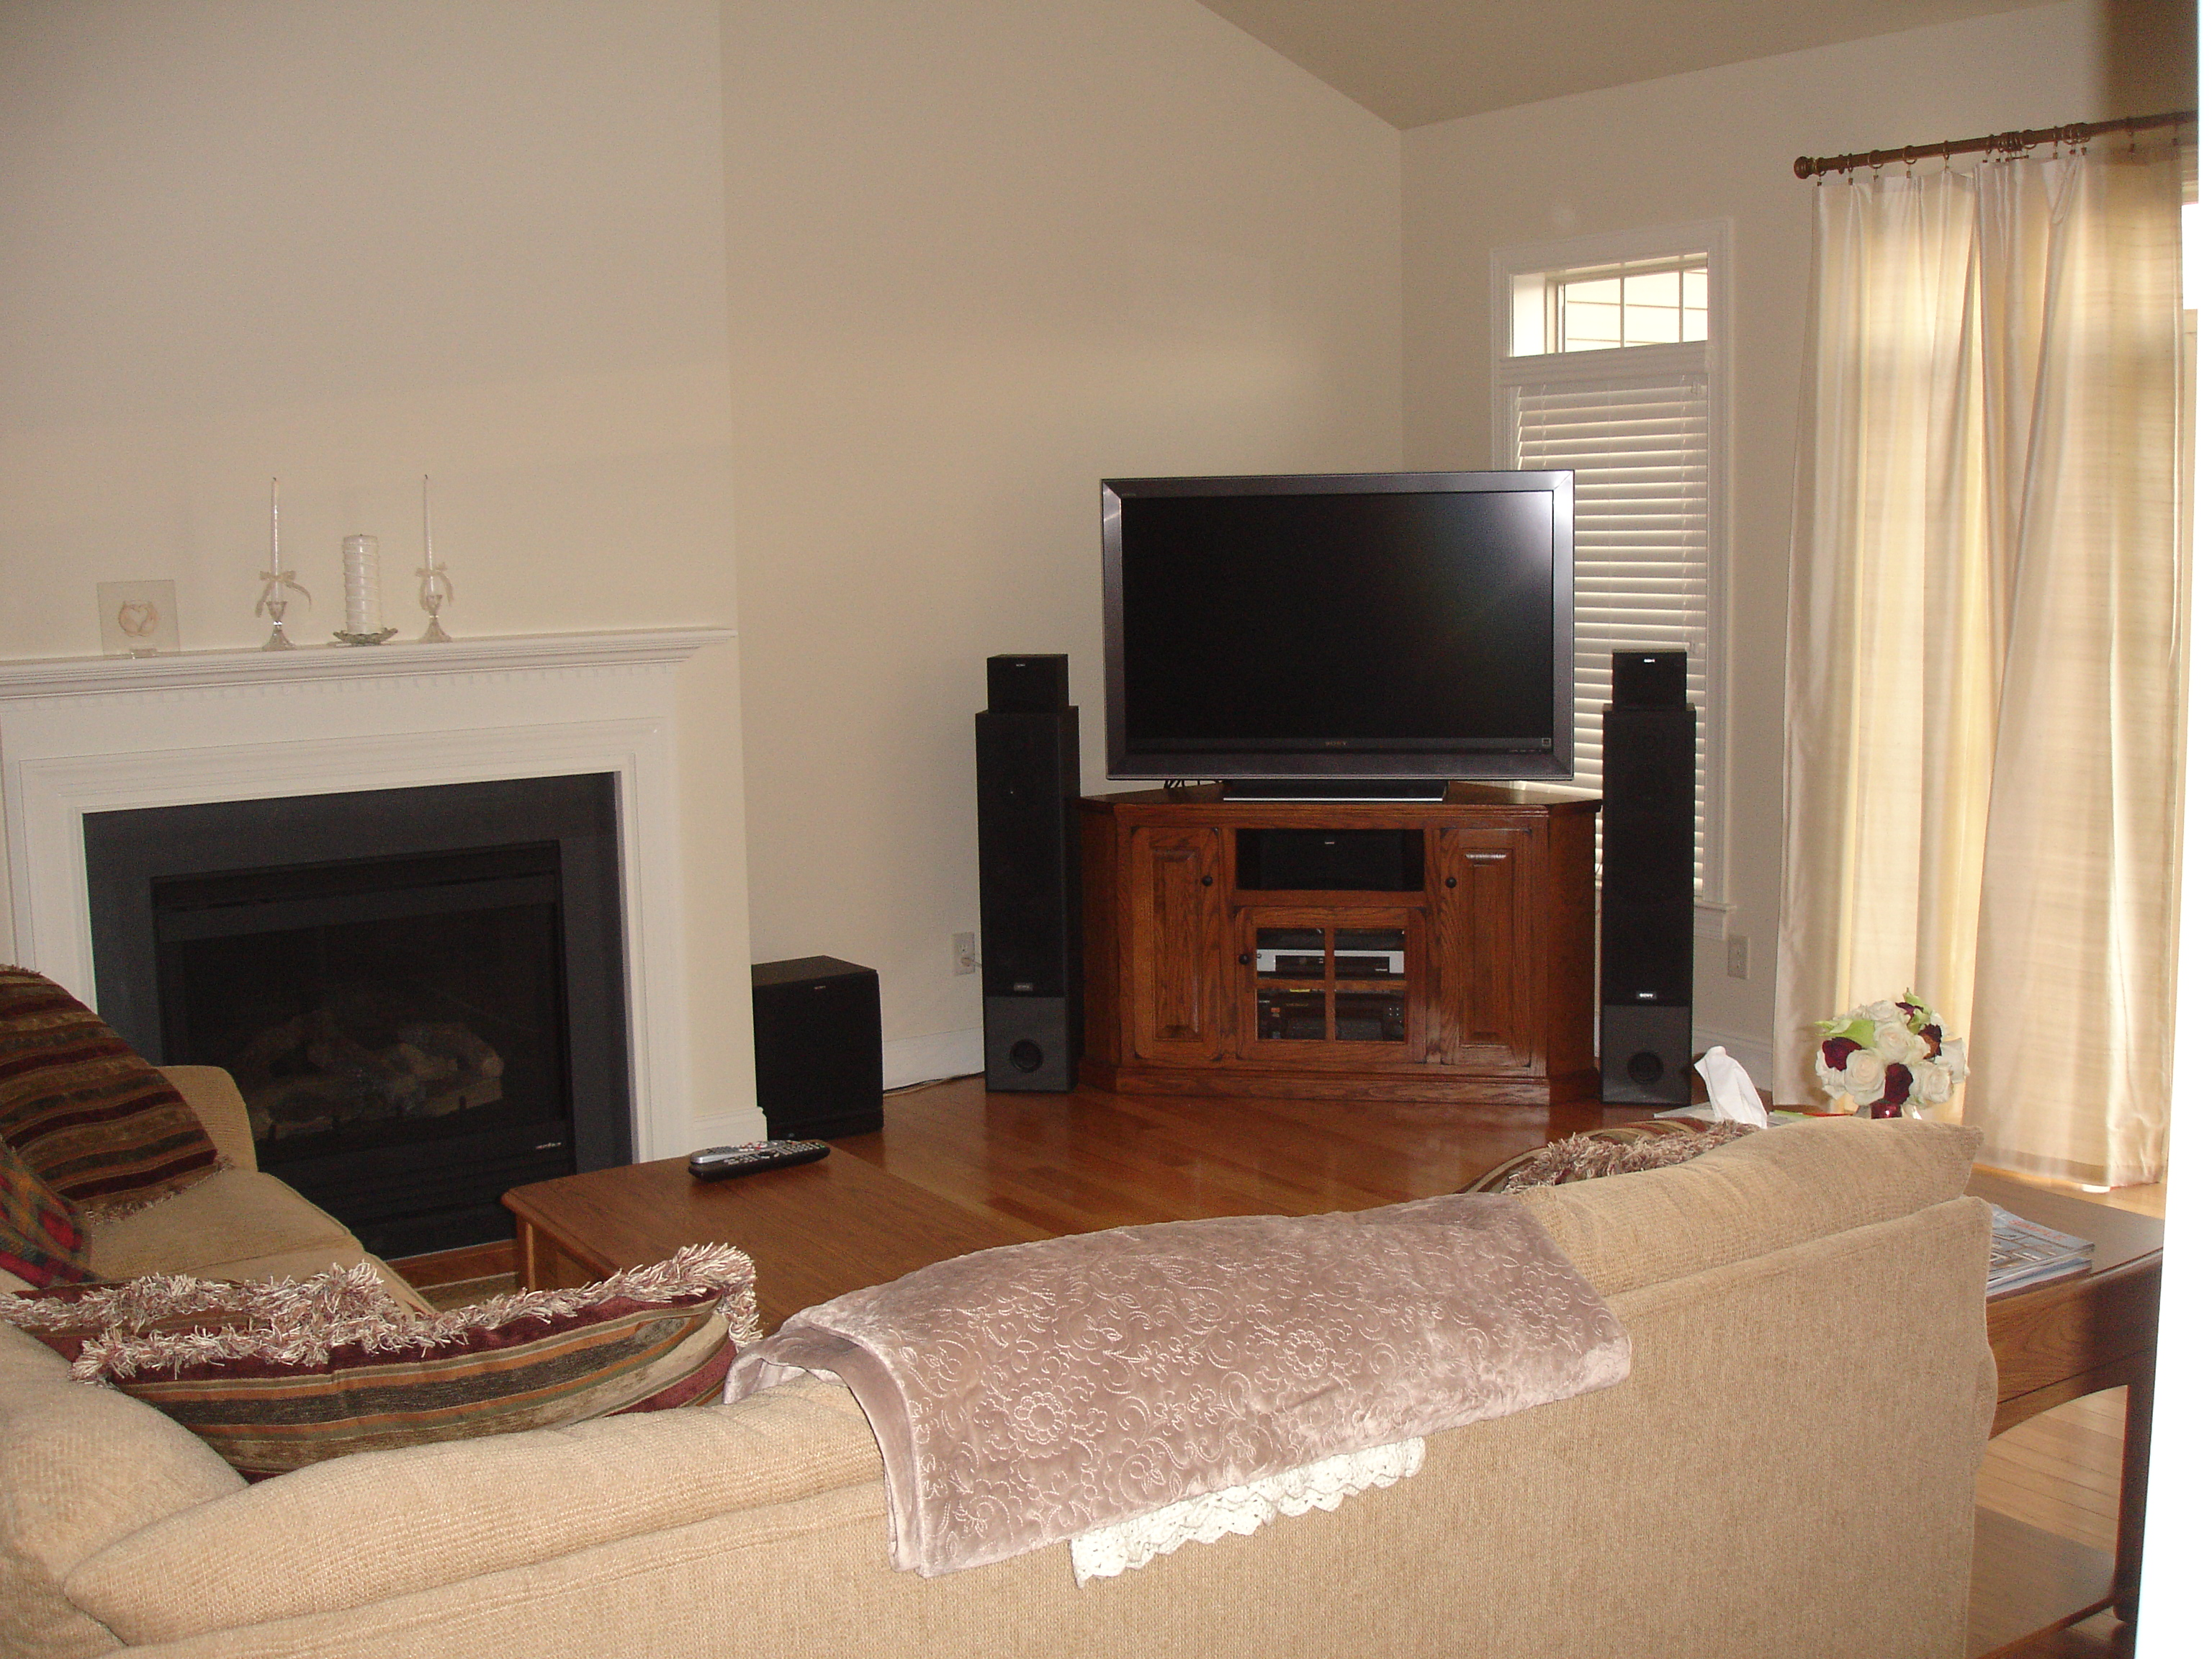 Living Room With Tv In Corner Home And Garden Tv And Tv Home Design